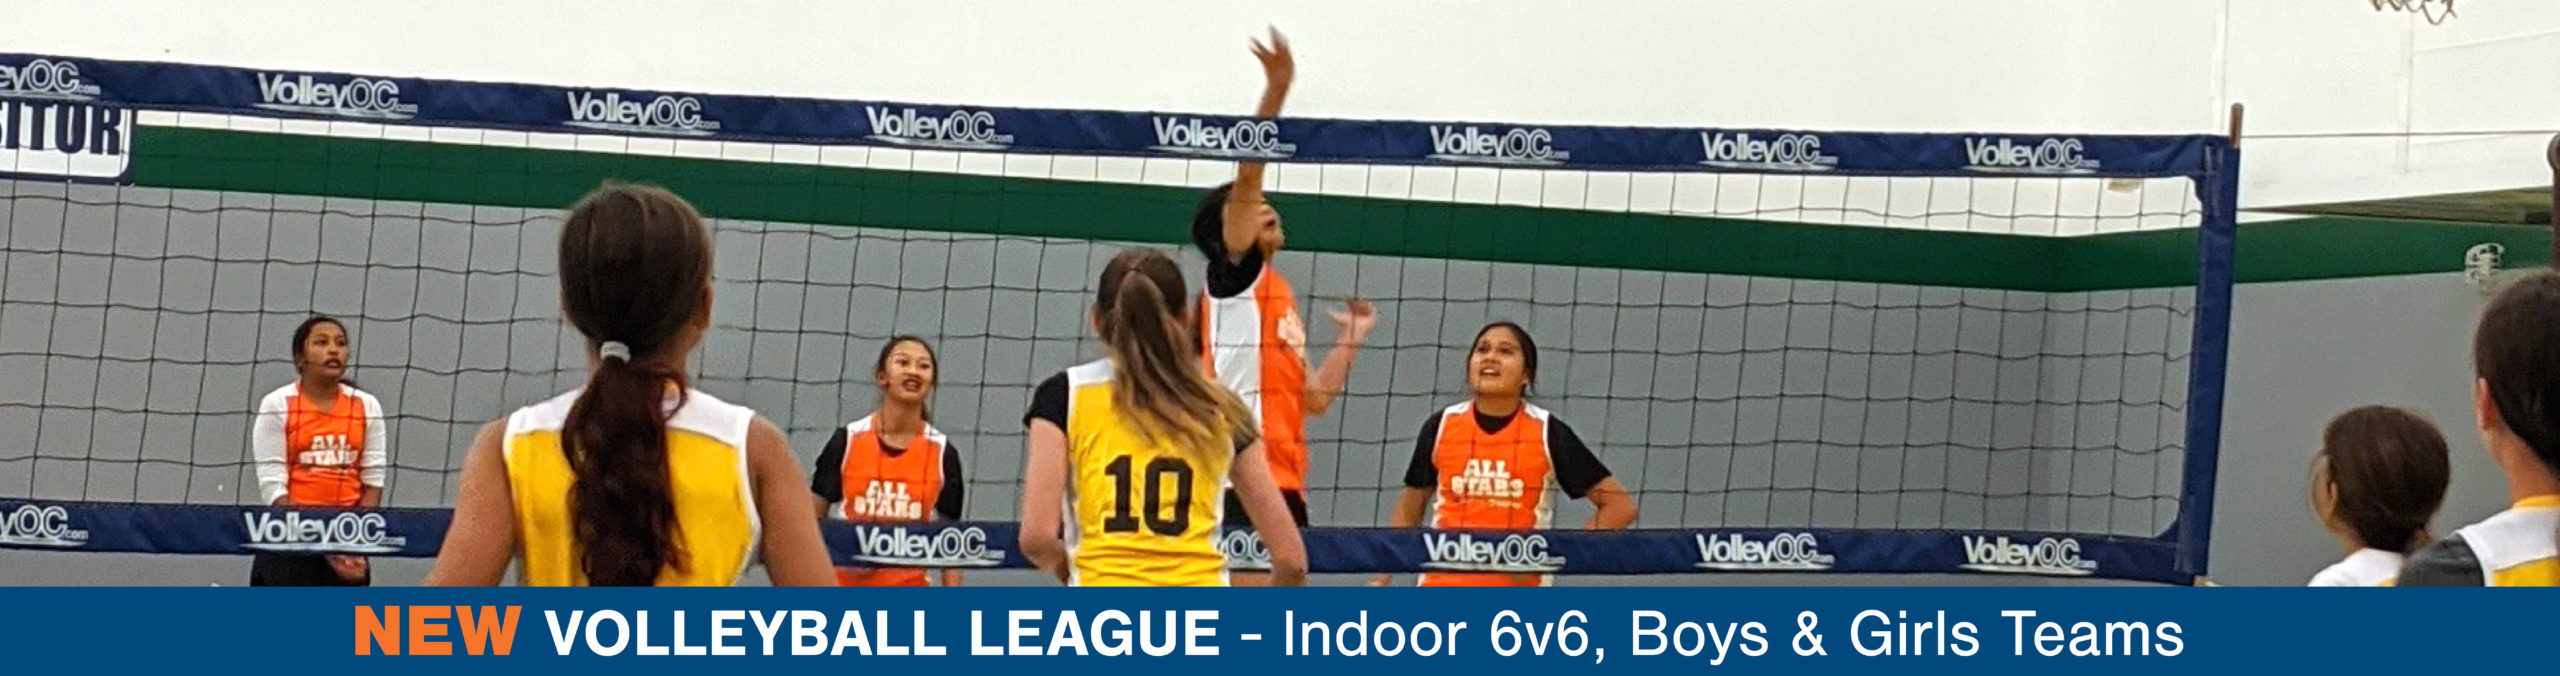 New Volleyball League at BGCHV